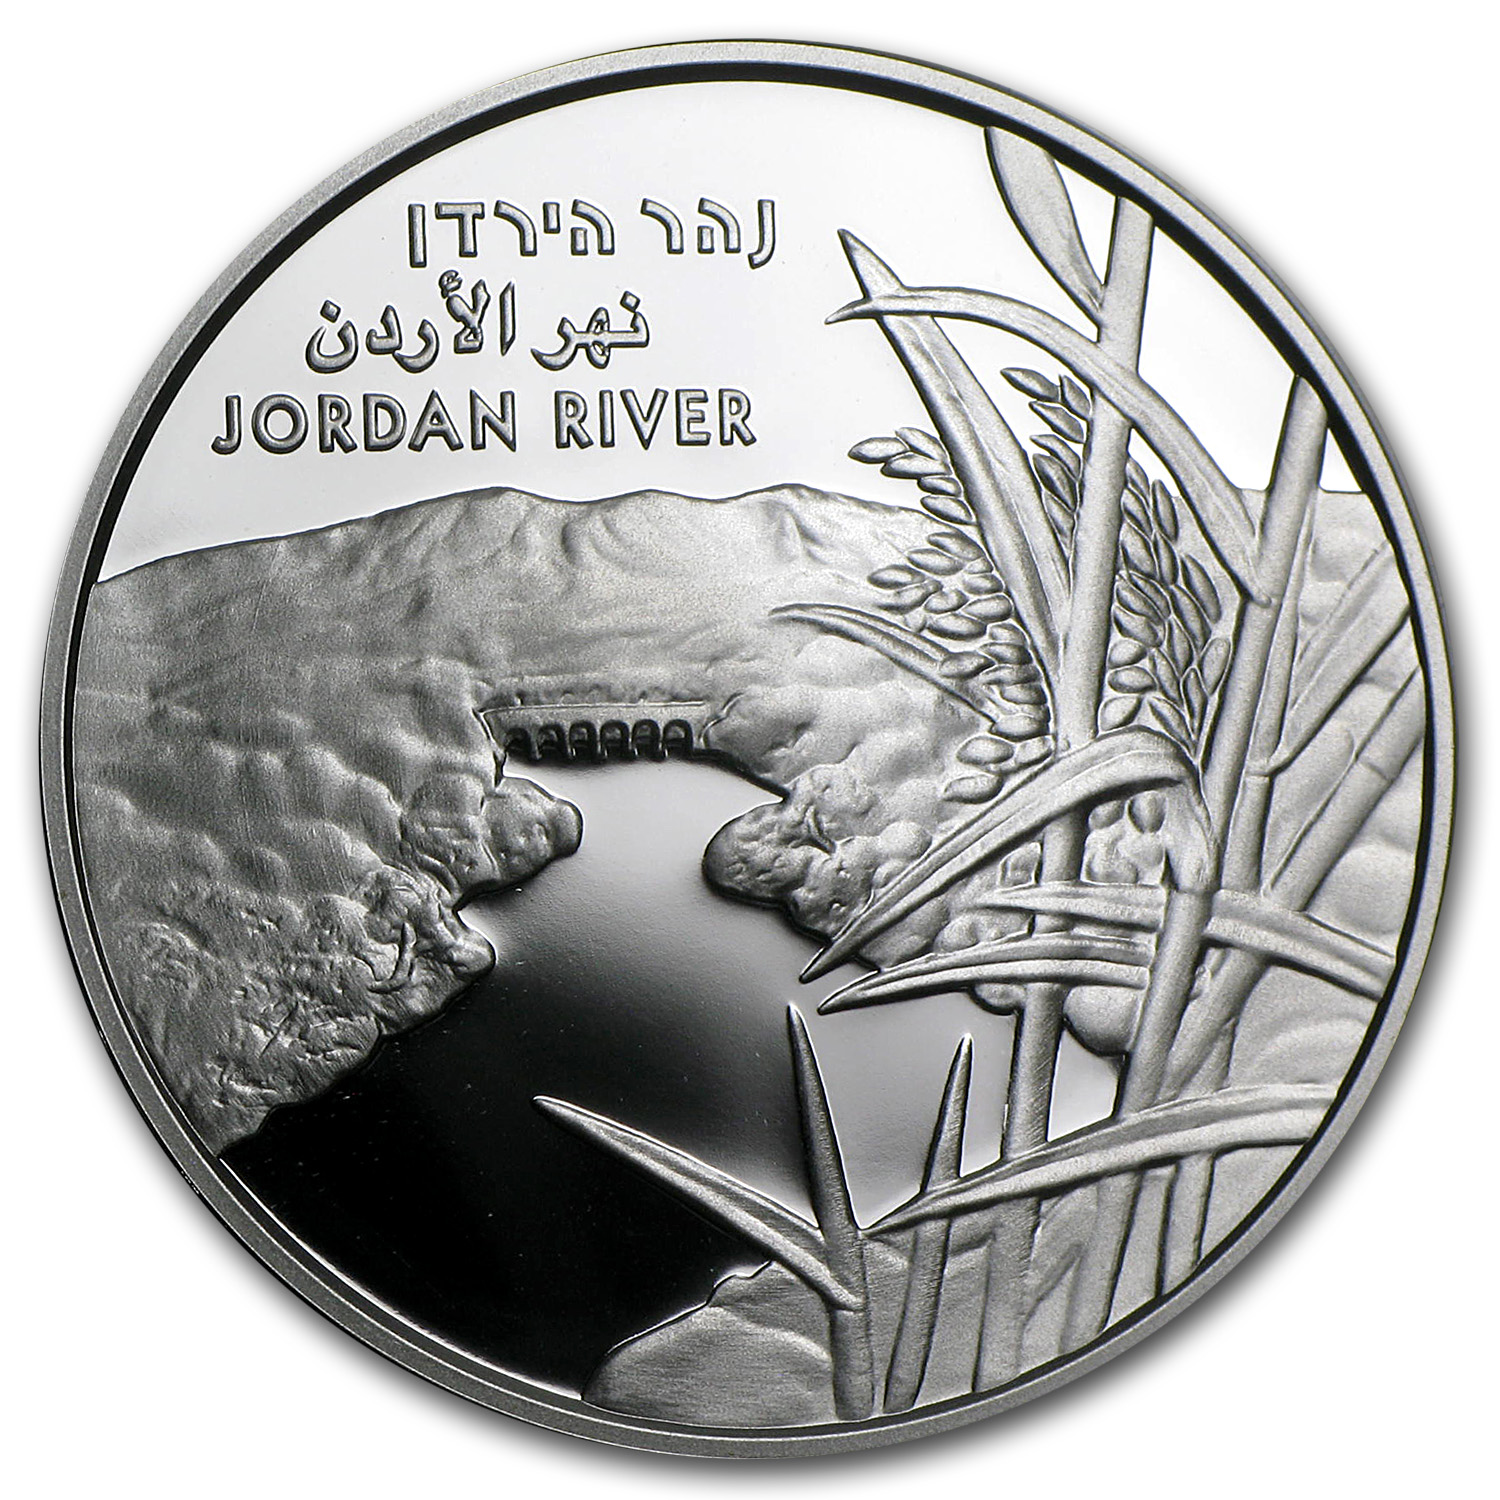 2013 Israel Silver 1 NIS The Jordan River Proof-Like